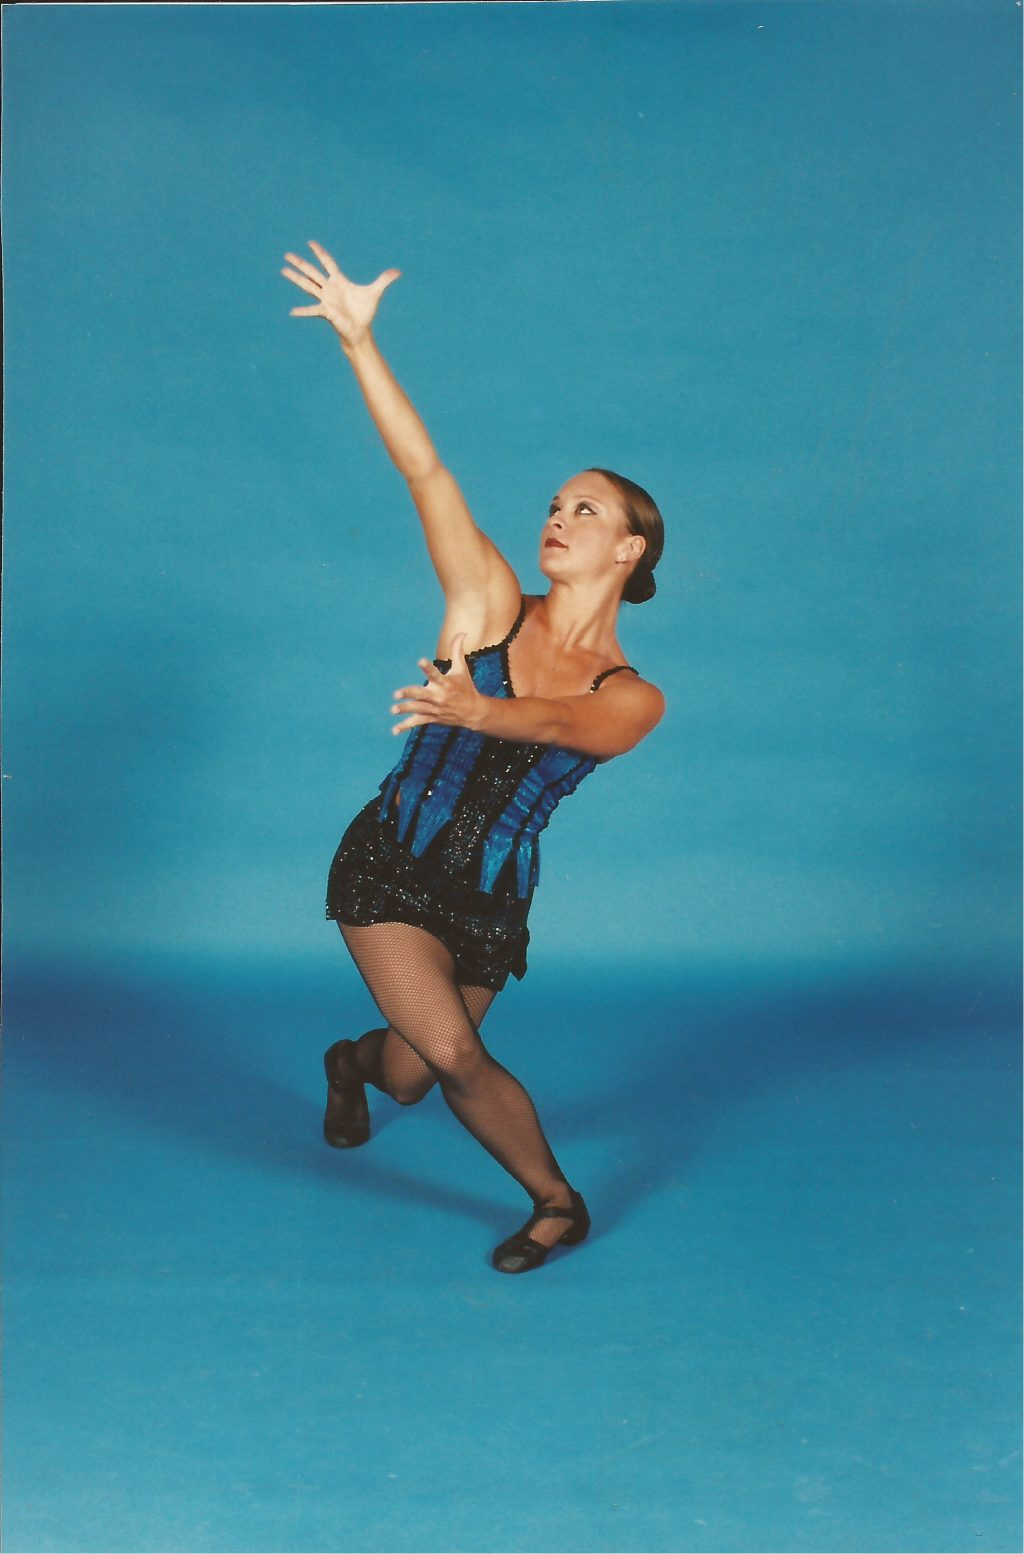 Shannon Dancing - Port Orange Dance Studio Classes and